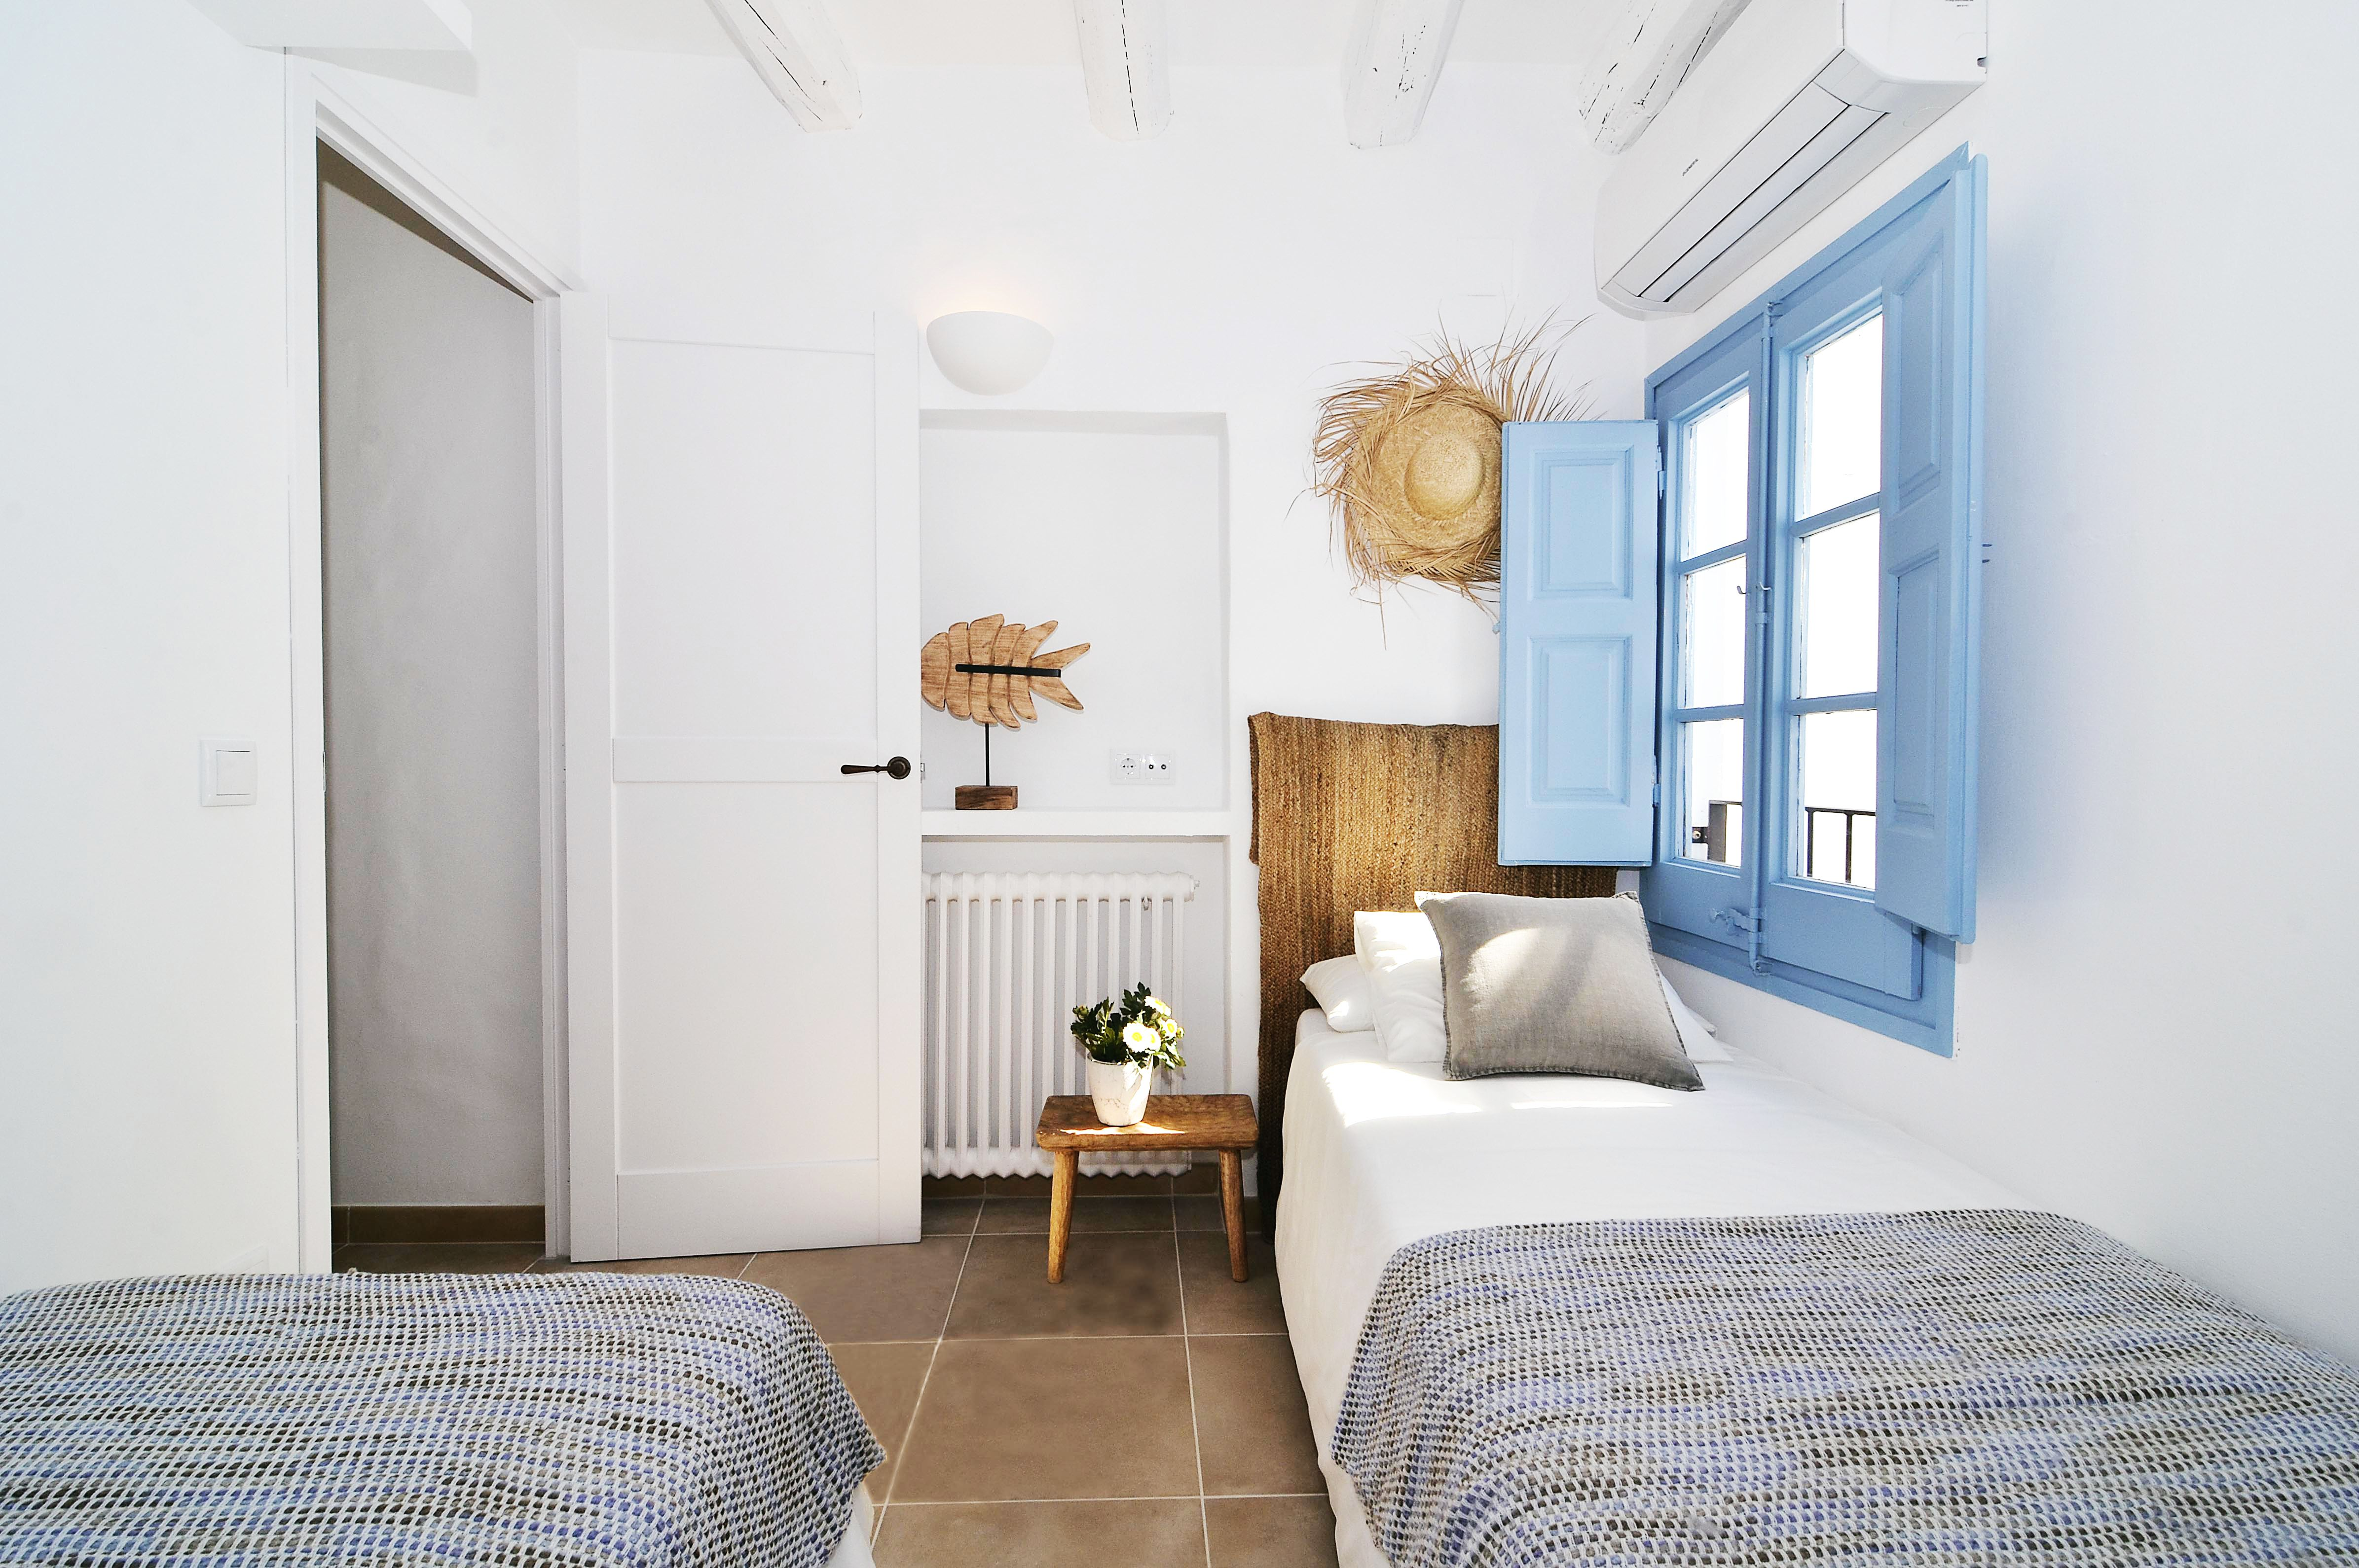 House tour: old fisherman's house in Sitges: bedroom with blue window